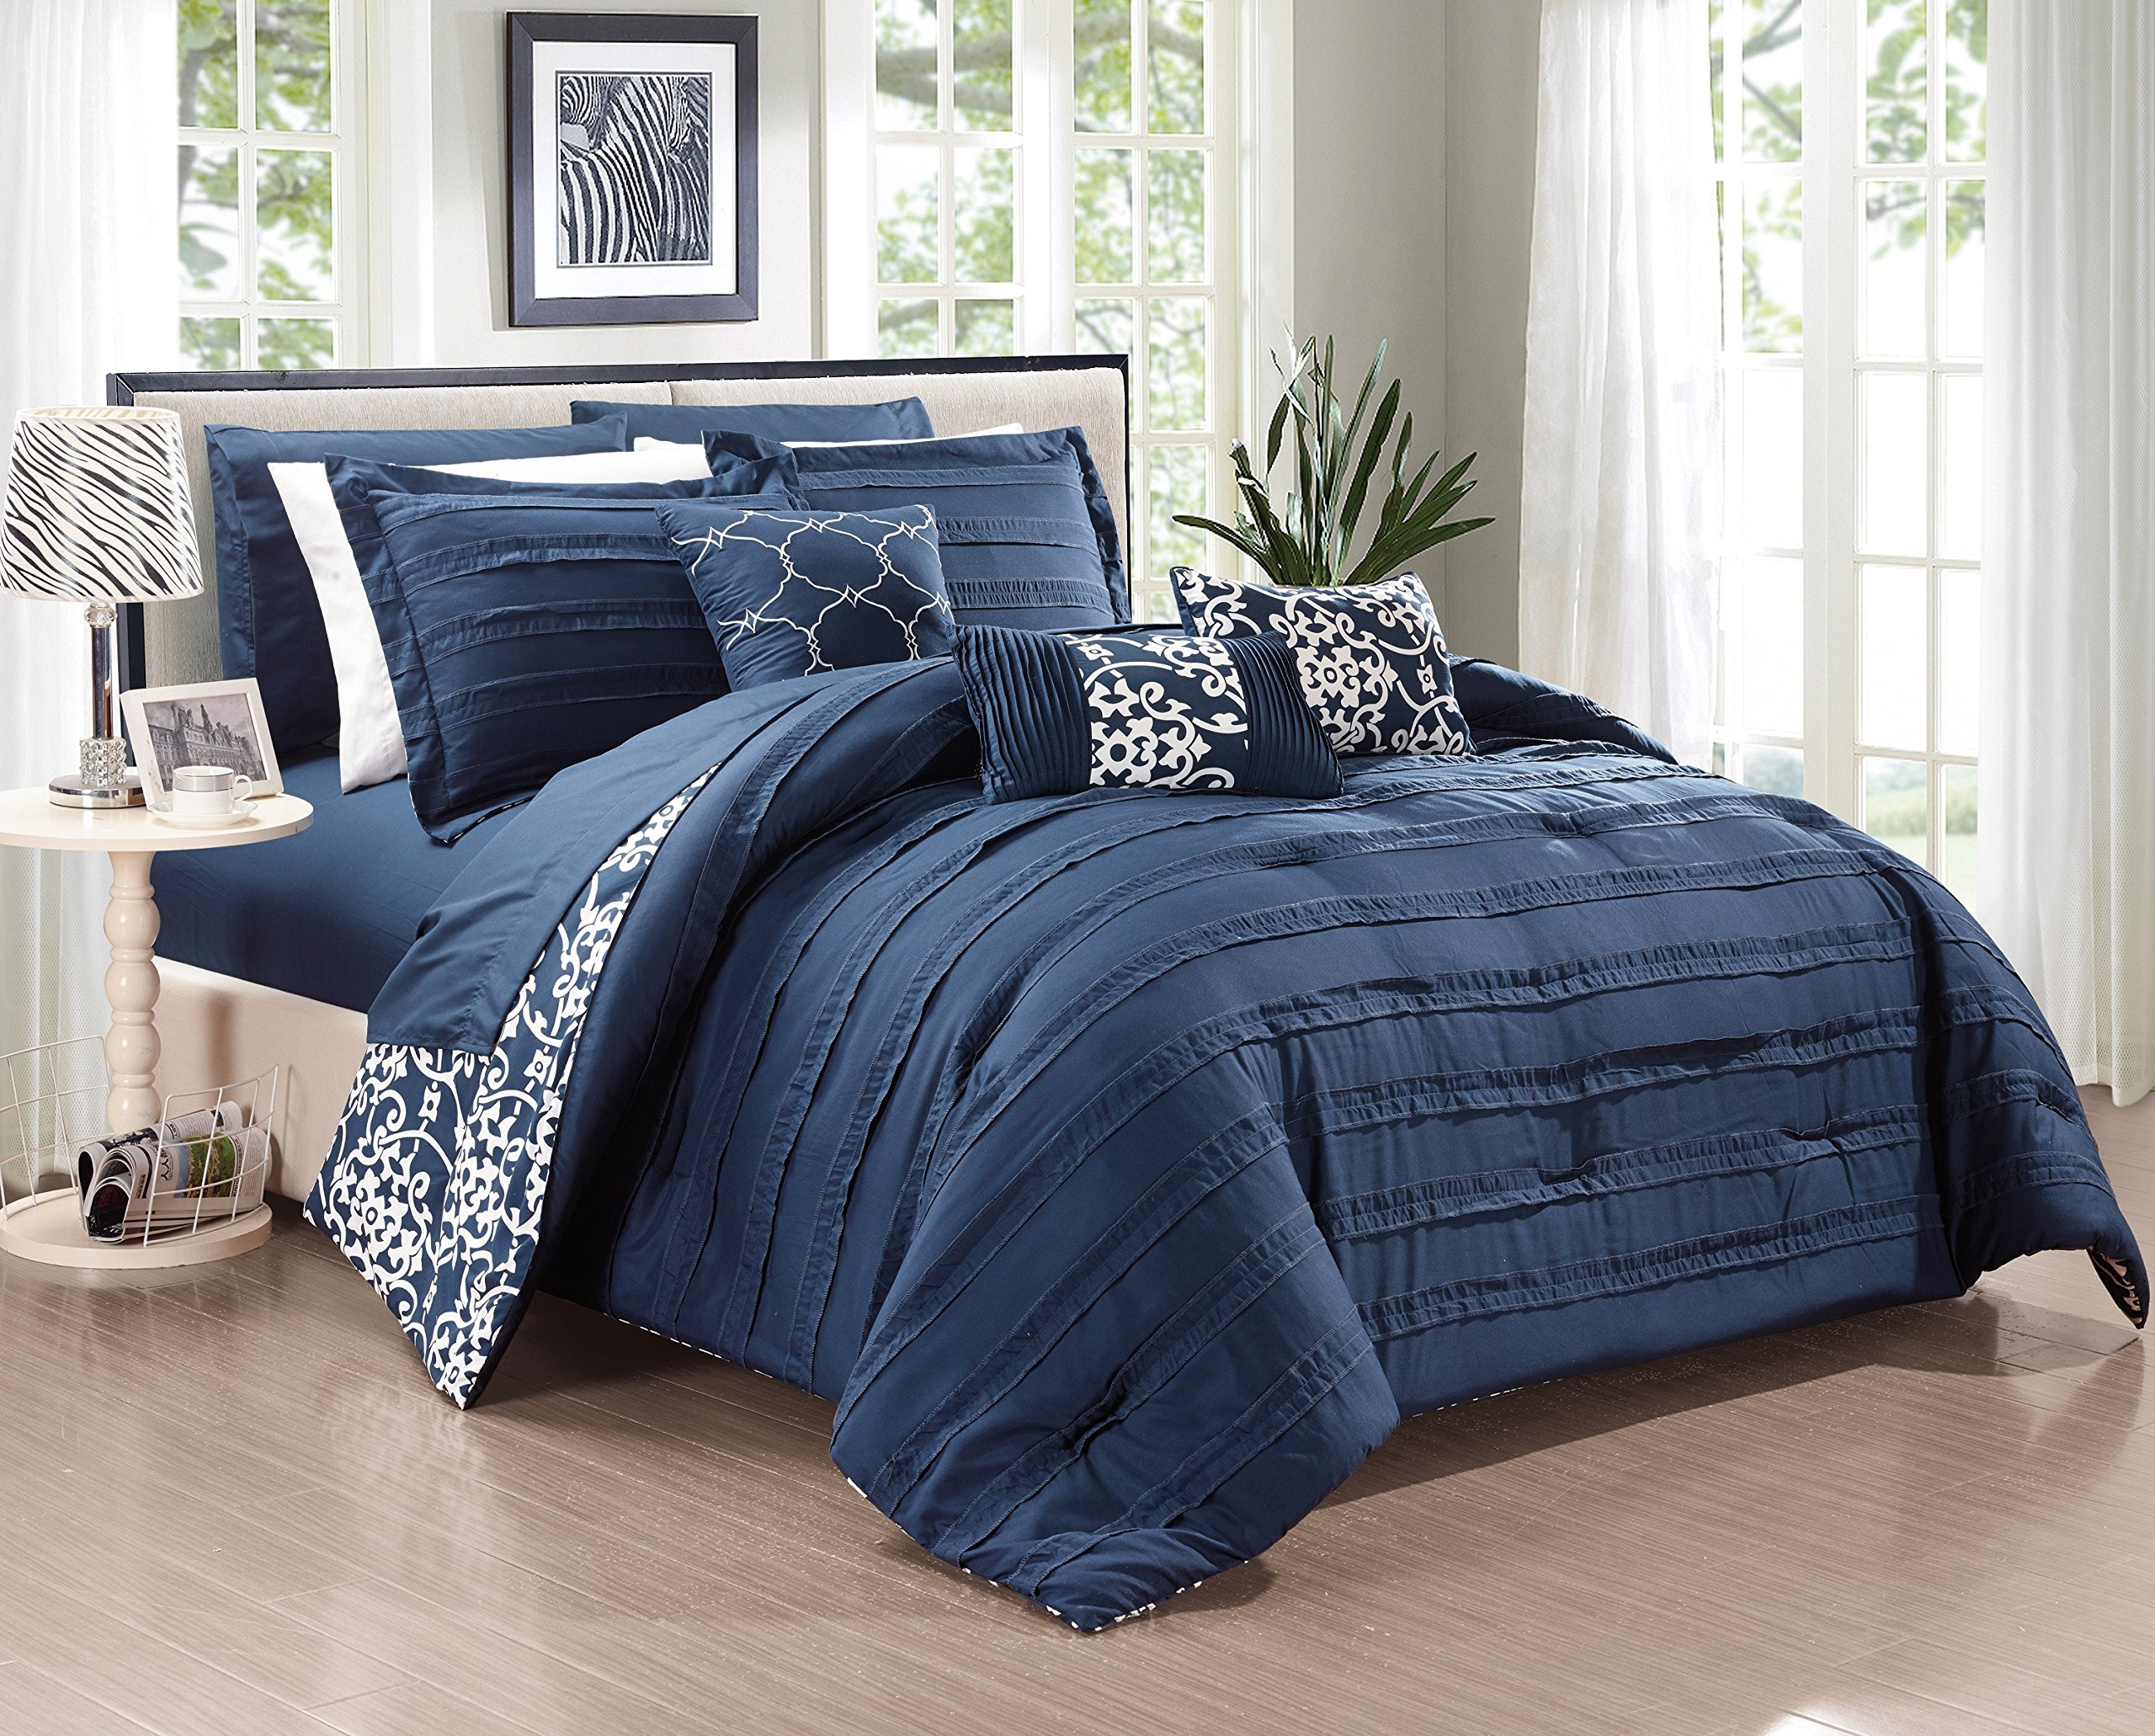 Chic Home 10 Piece Lea Complete Pleated ruffles and Reversible Printed Bed In a Bag Comforter Set of Sheets, King, Navy by Chic Home